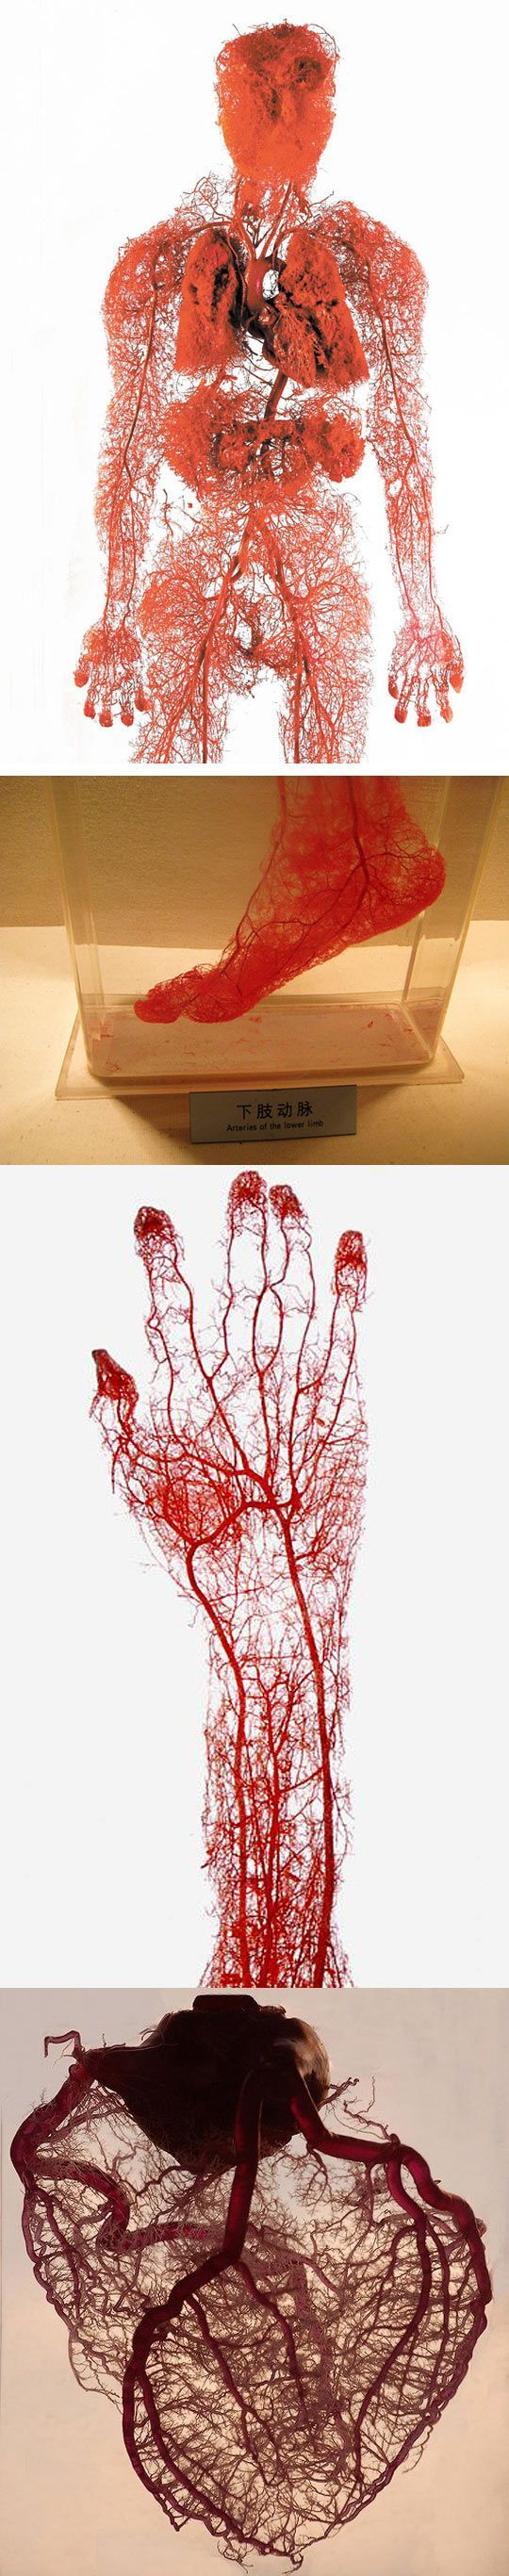 blood vessels in the human body anatomy medecin pinterest anatomie medizin und. Black Bedroom Furniture Sets. Home Design Ideas